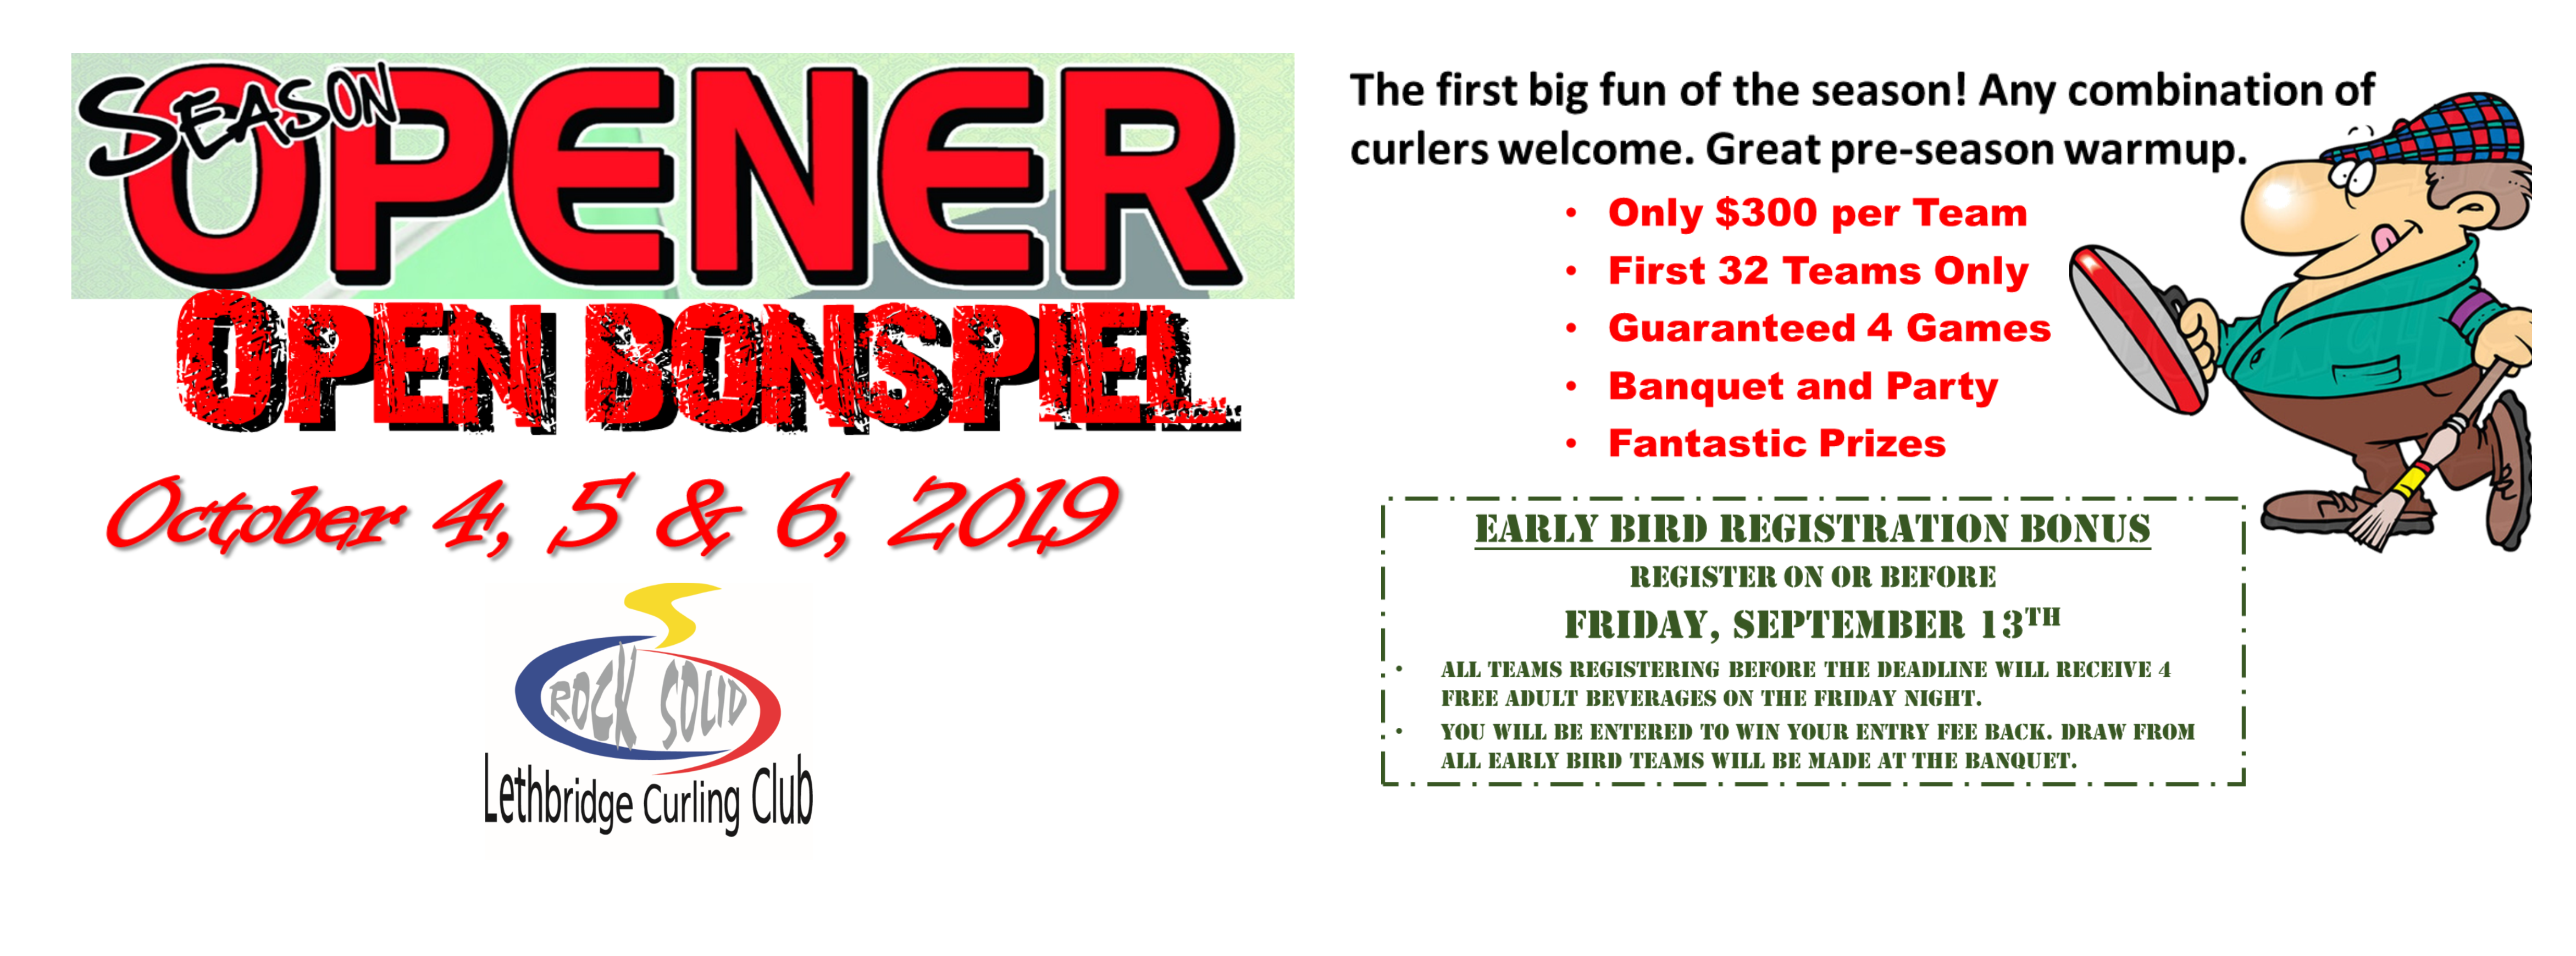 <div id=slideshow_title>Opening Open Bonspiel</div> <br><div style='text-align: left; font-size: 18px;'>Click Anywhere to Register!</div>